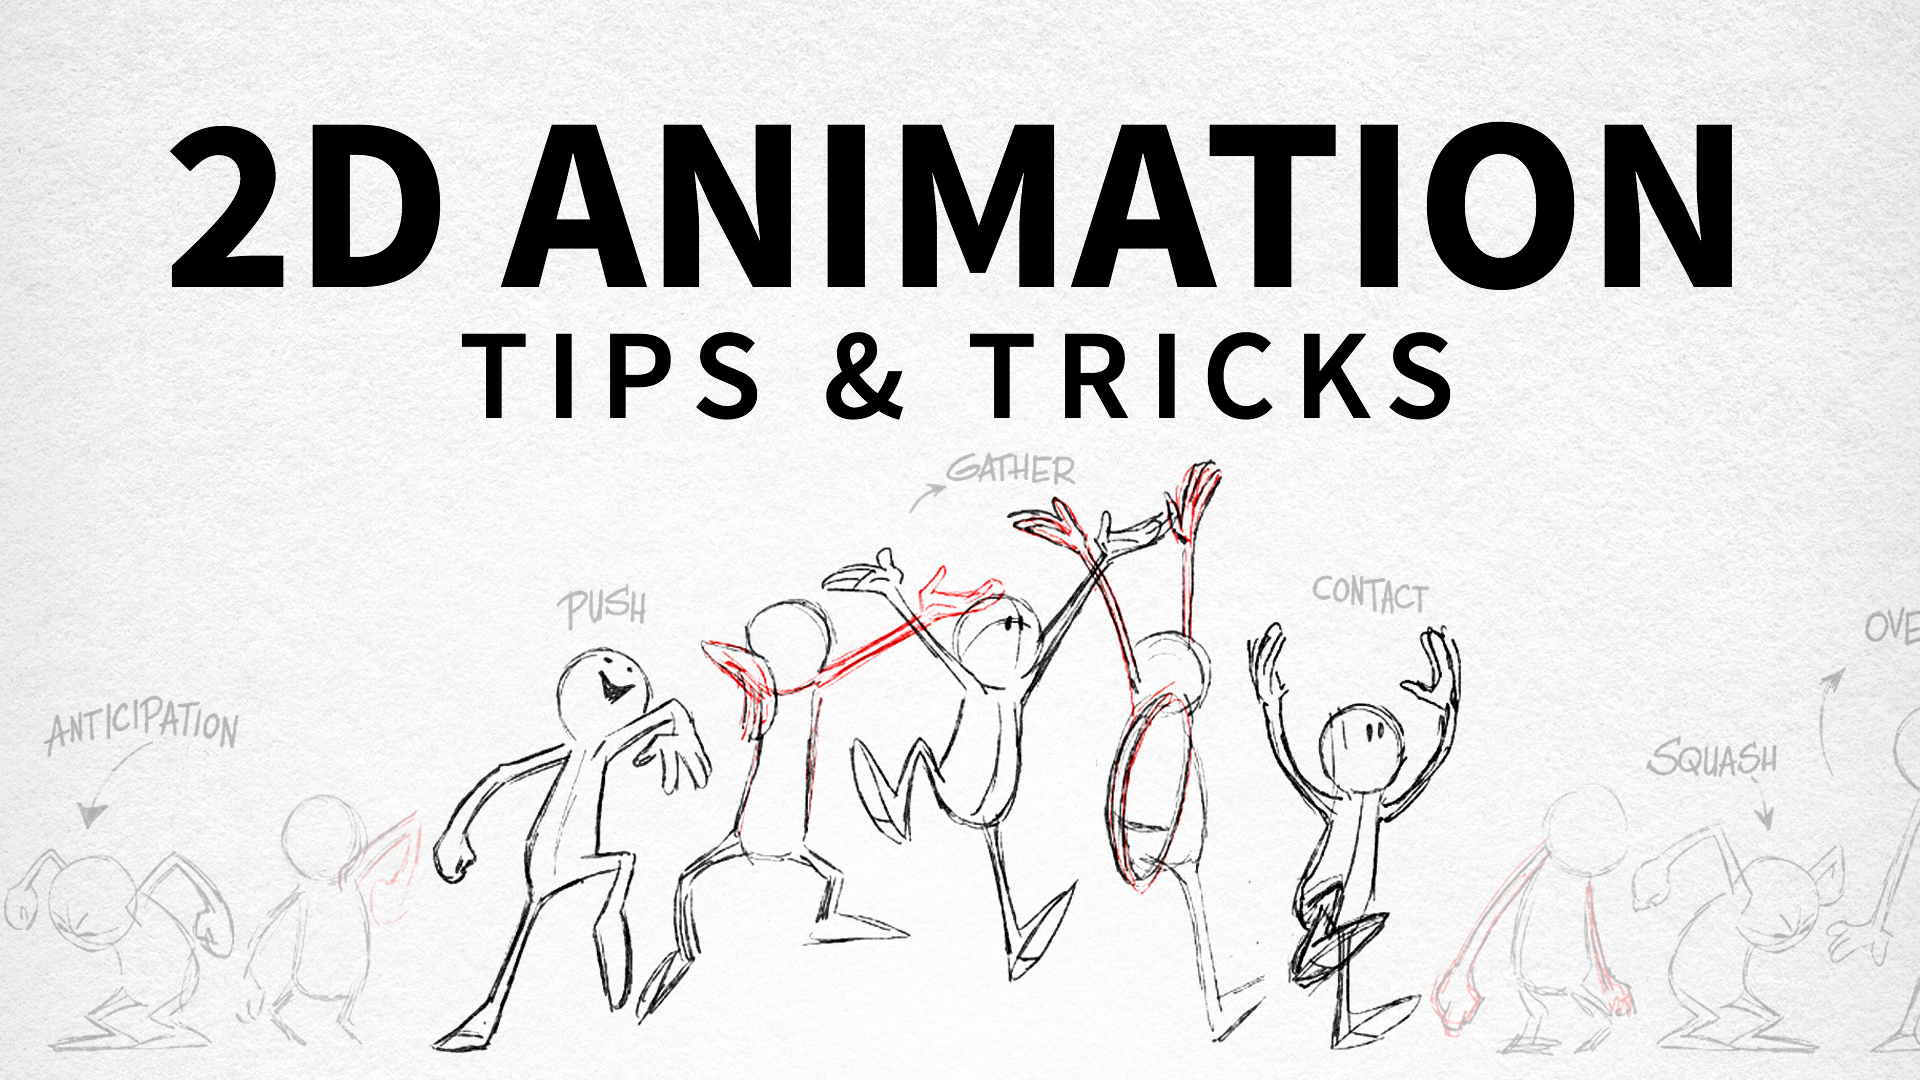 2d animation tips and tricks linkedin learning, formerly Moving Animation